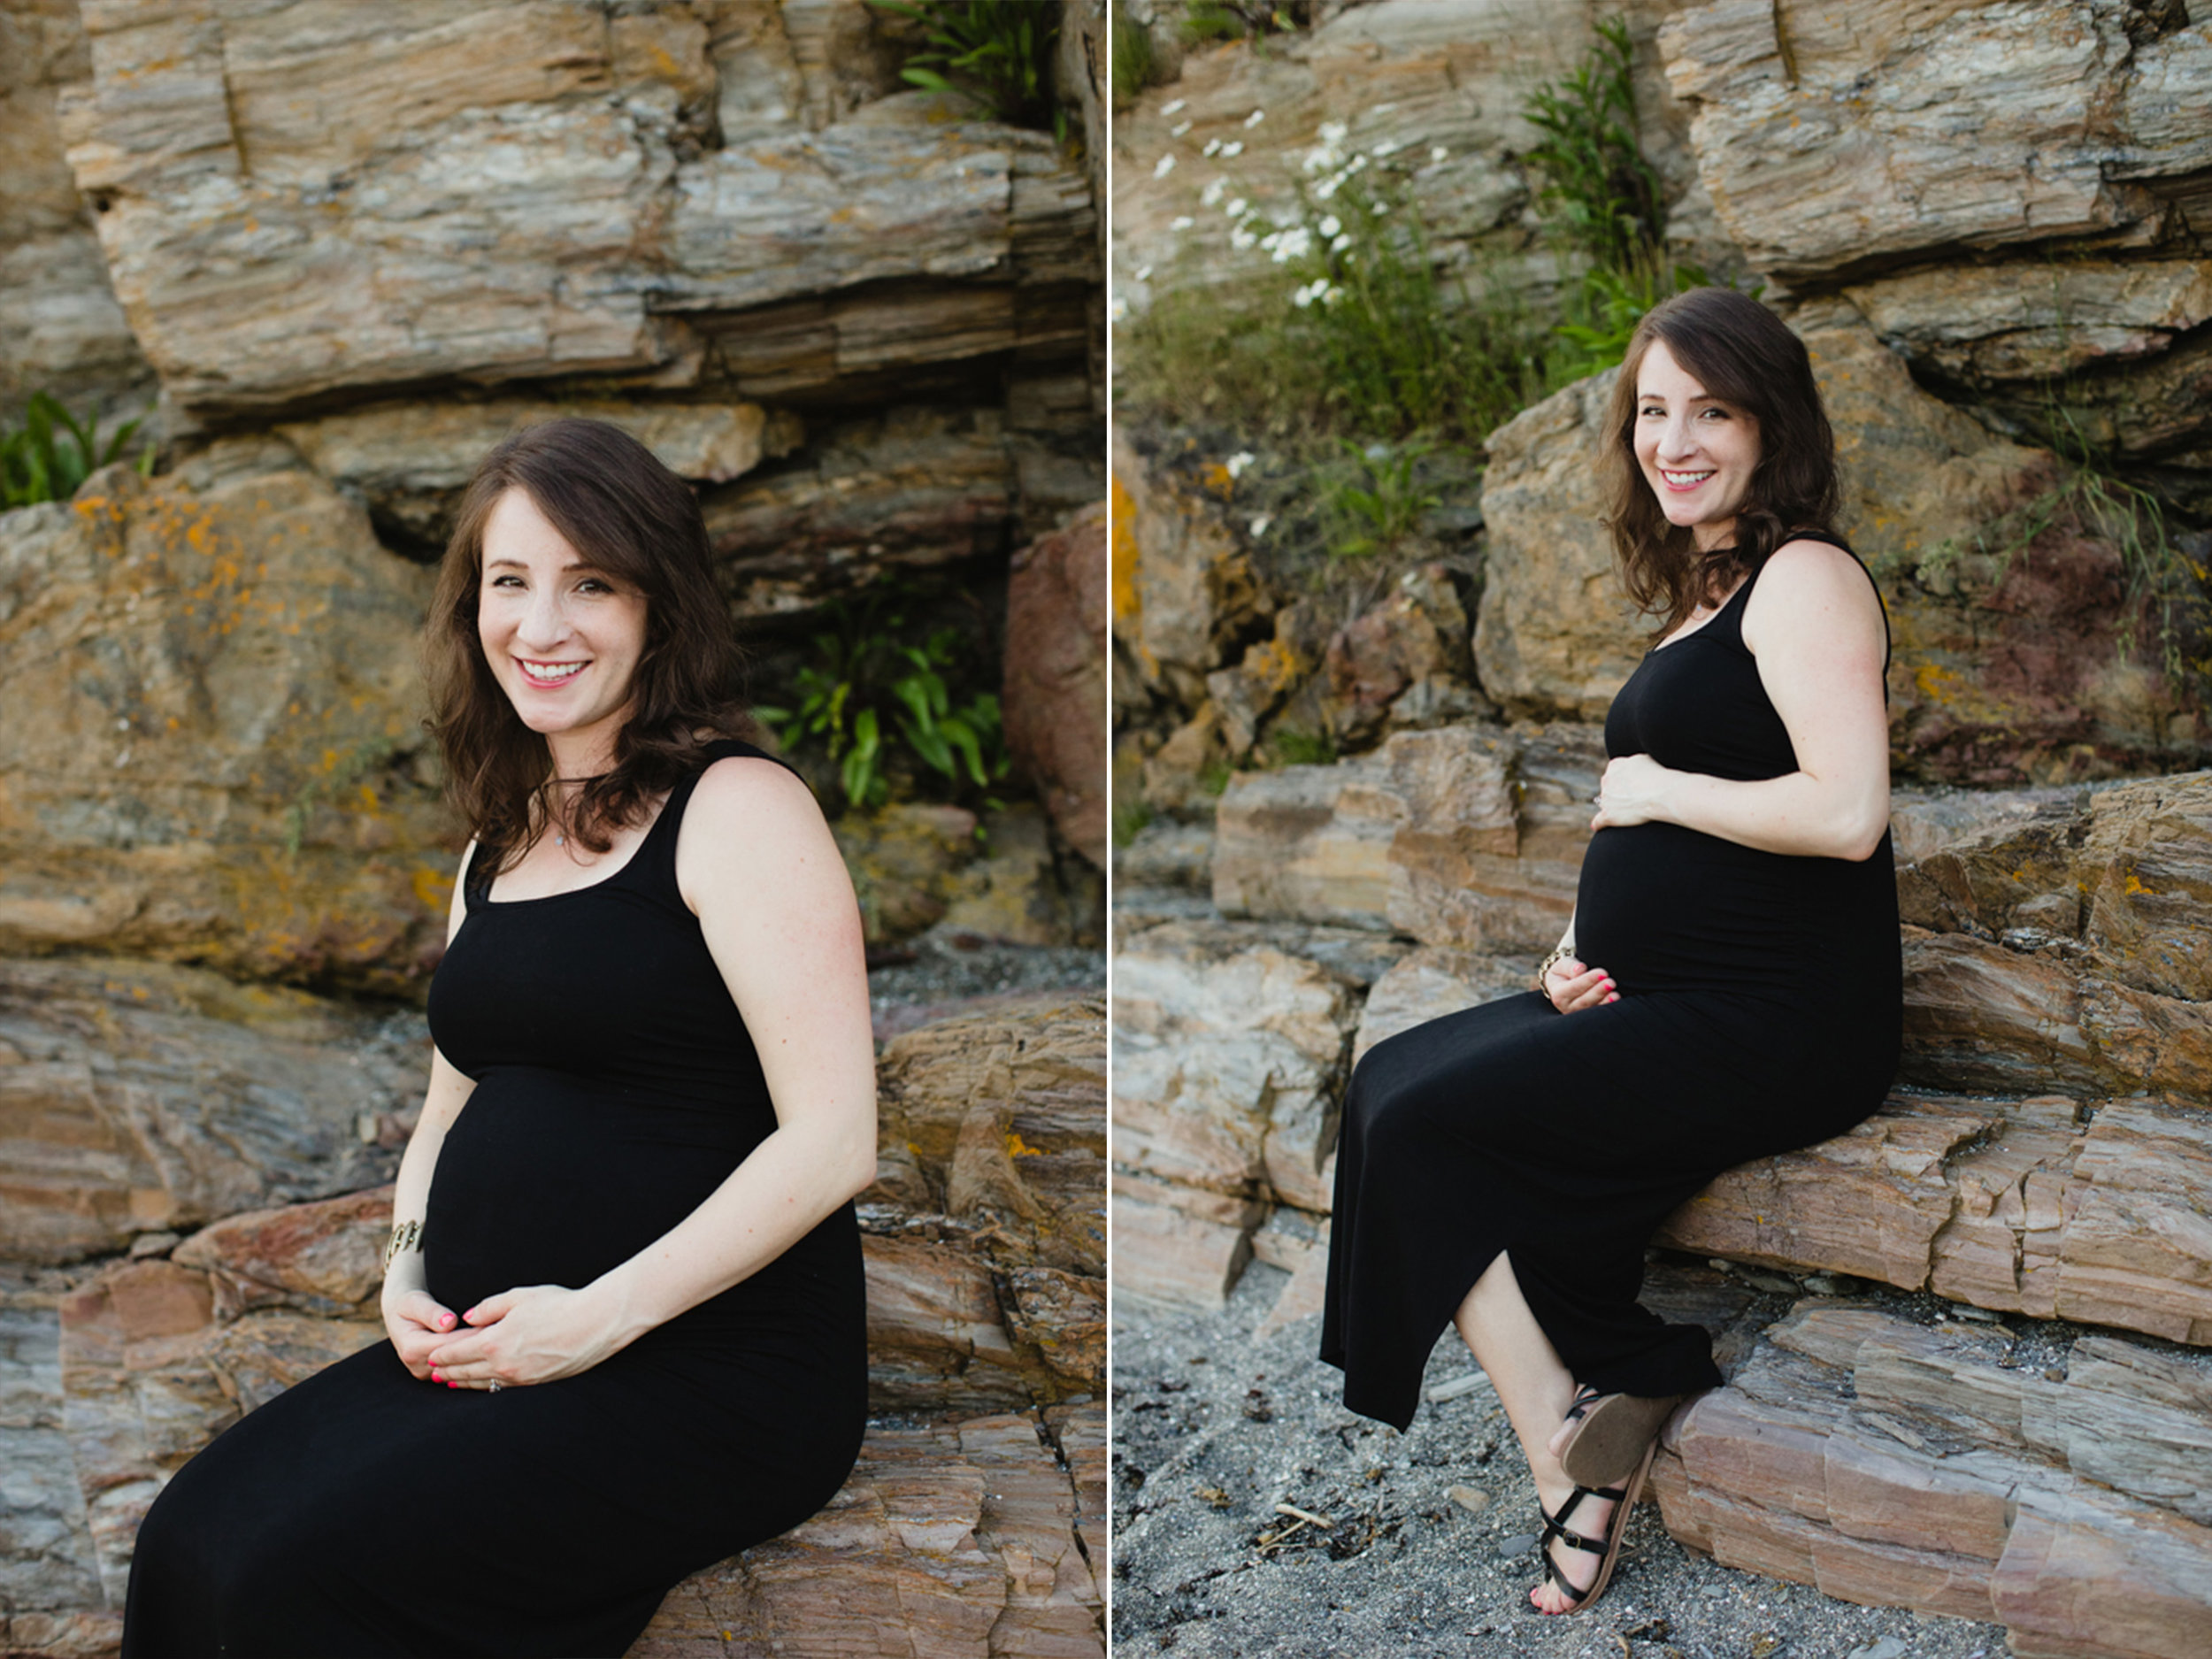 maine-maternity-photographer-stepheneycollins -1e.jpg